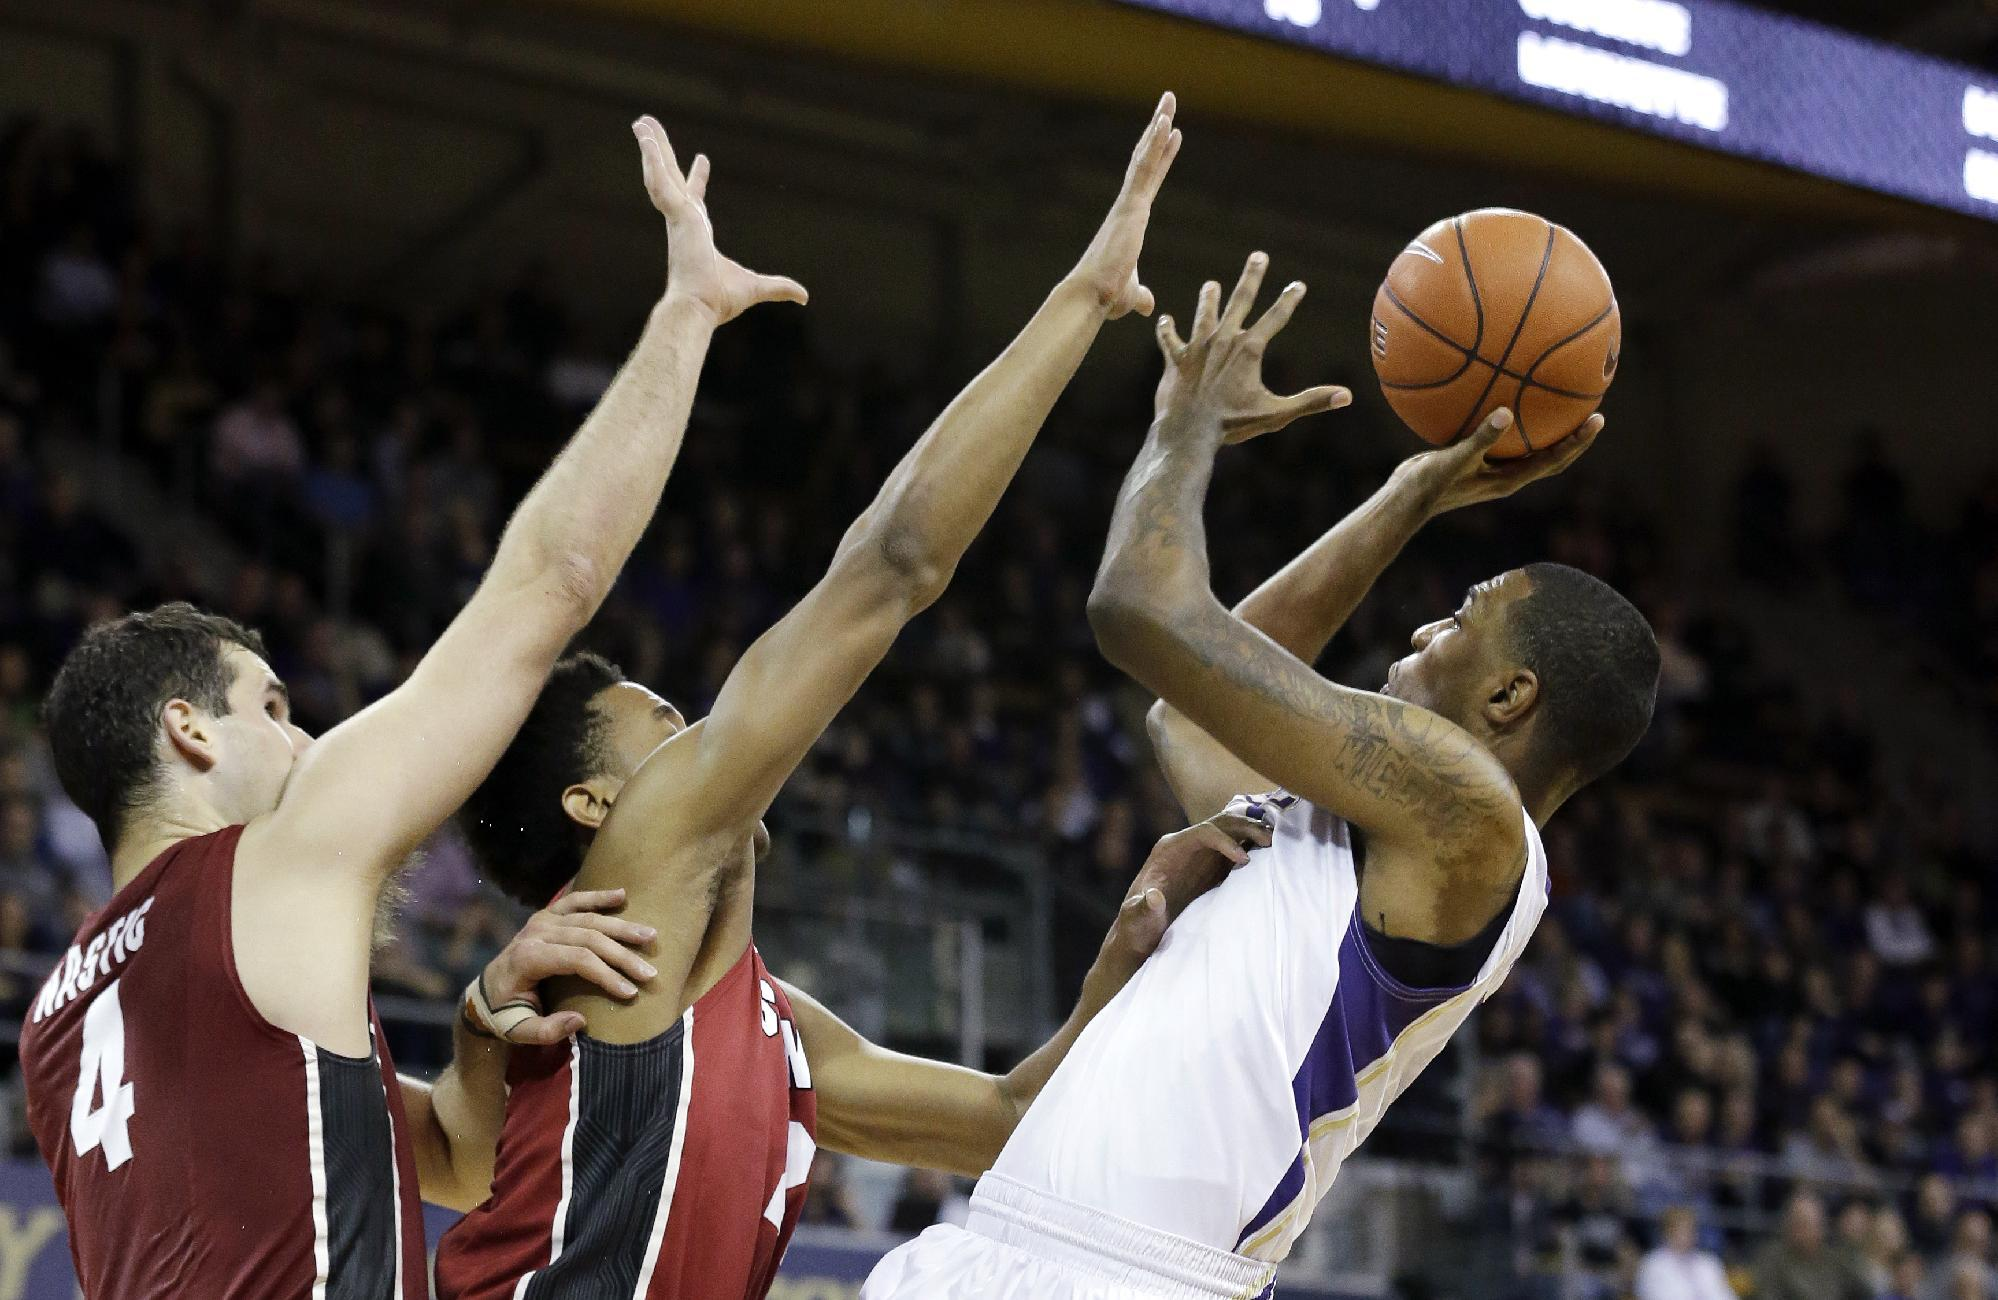 Stanford eases past short-handed Washington, 84-74